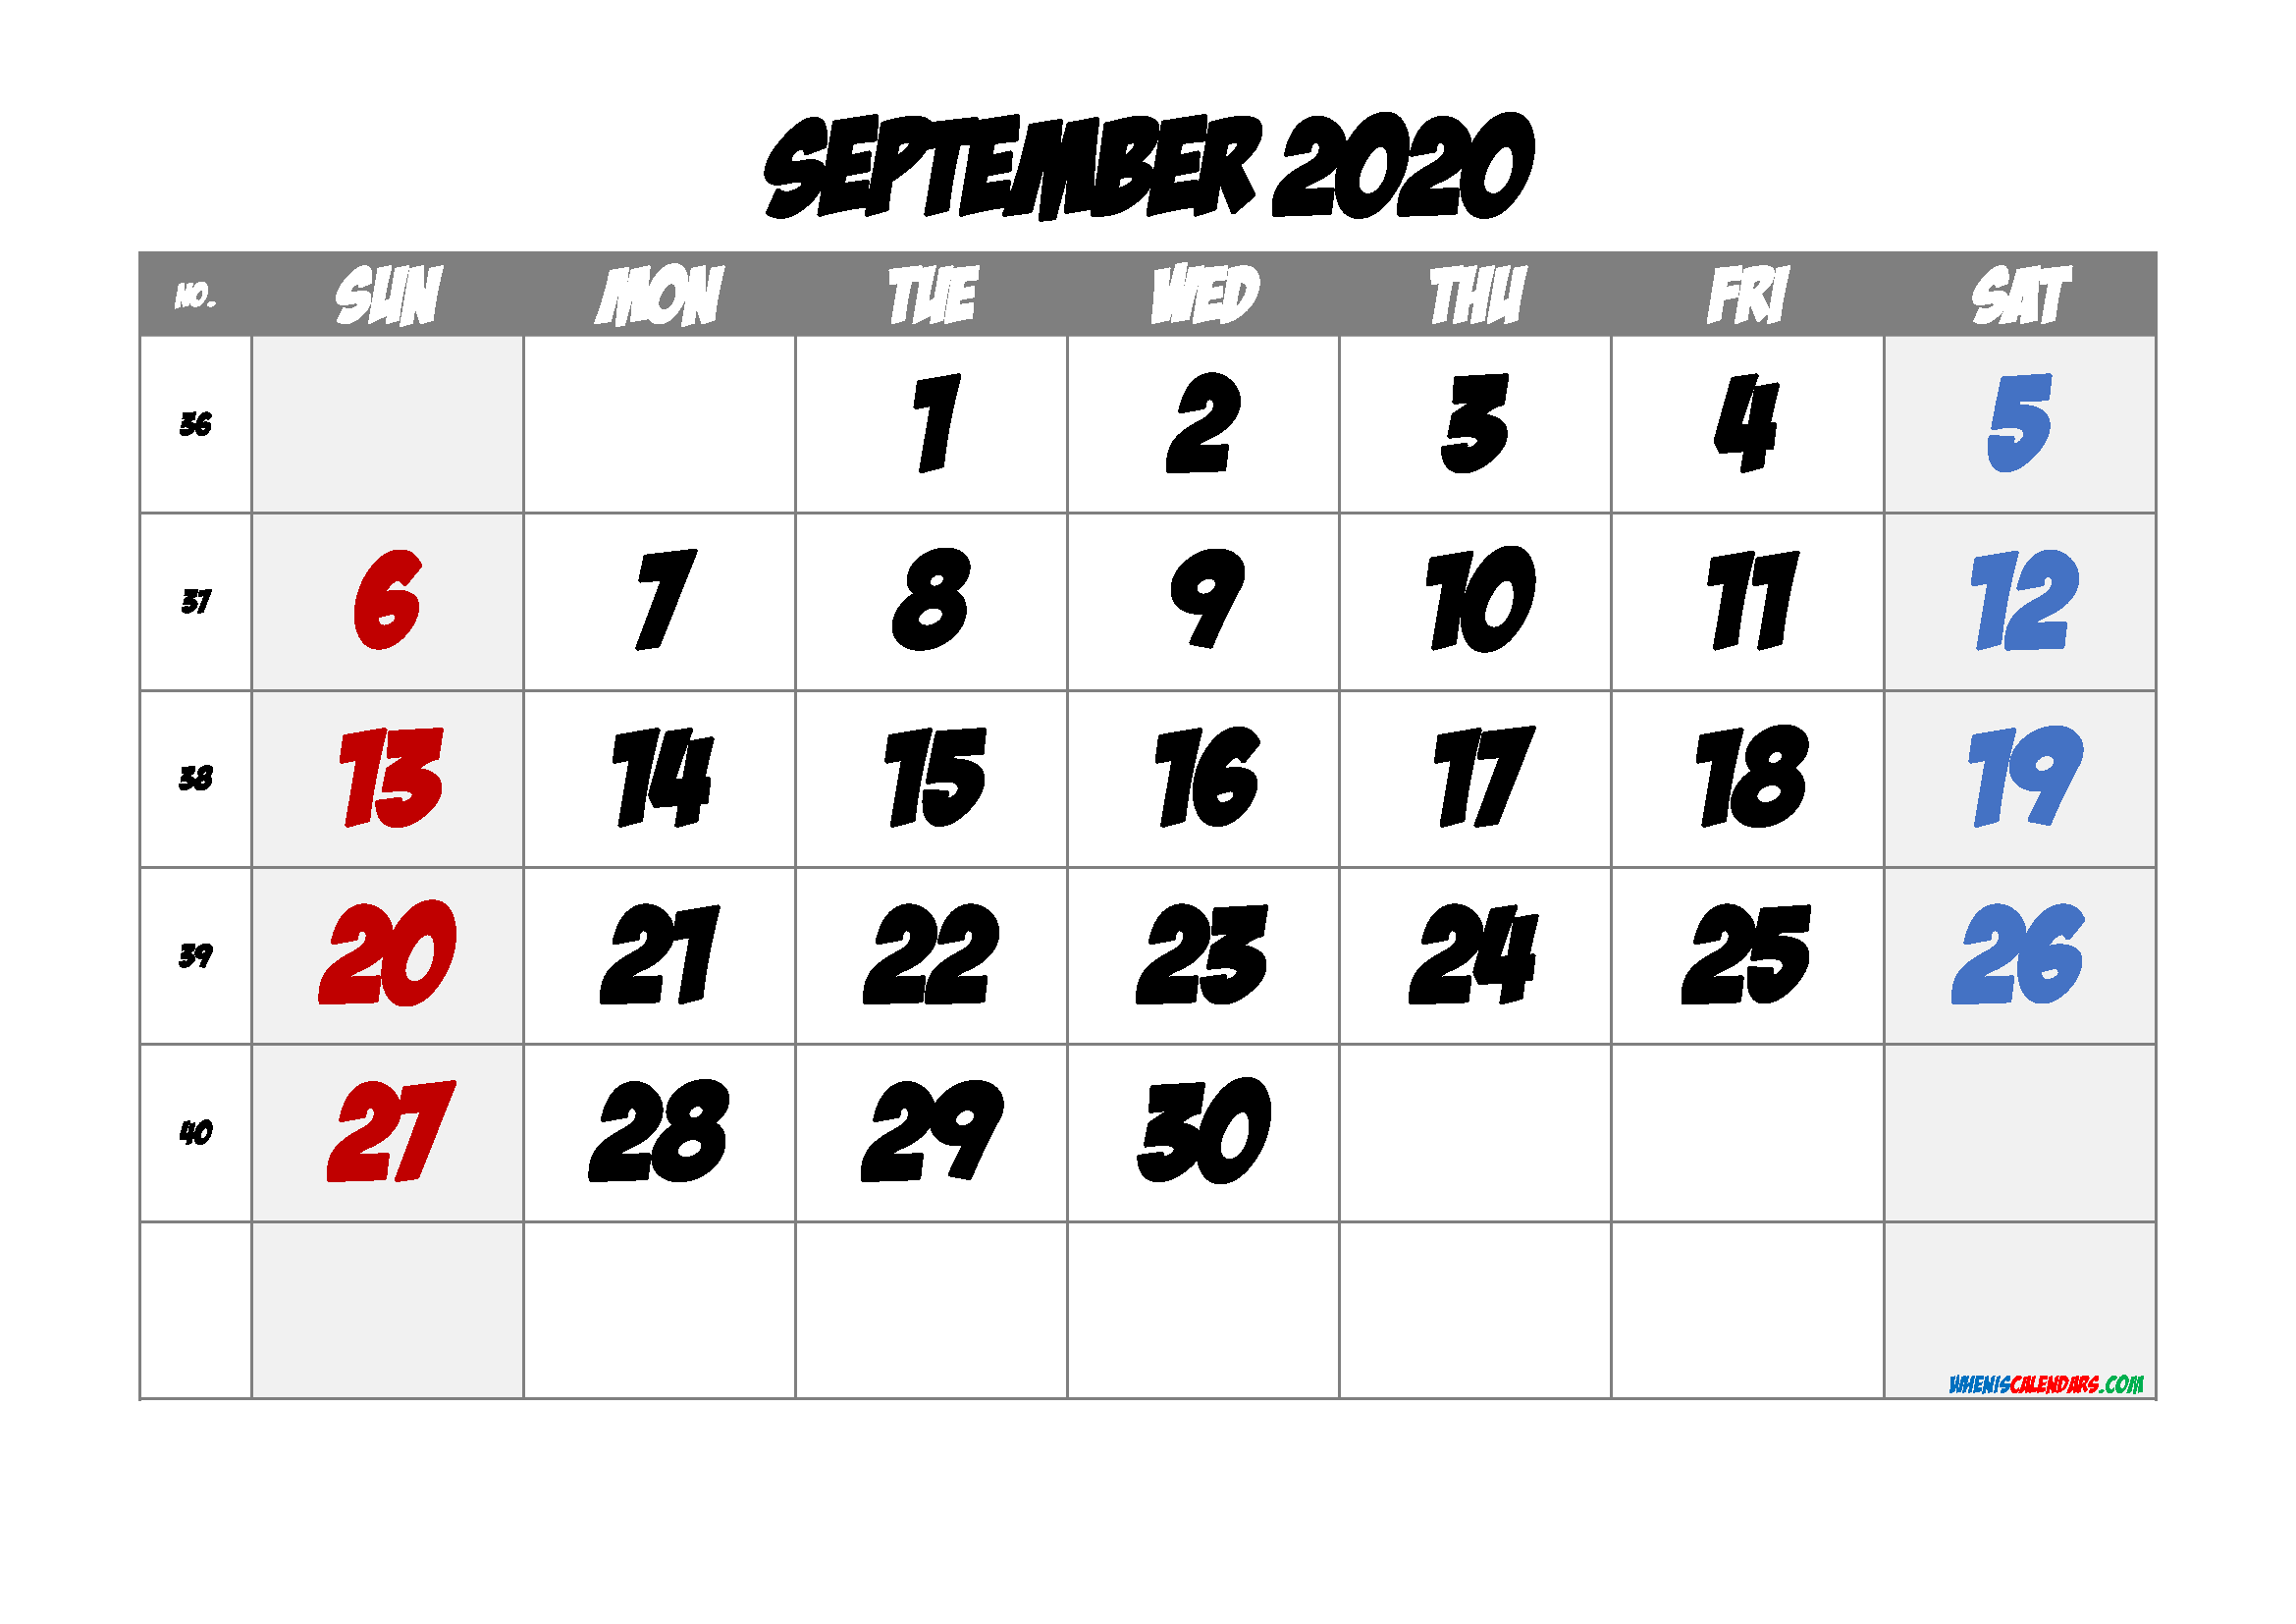 September 2020 Printable Calendar with Week Numbers